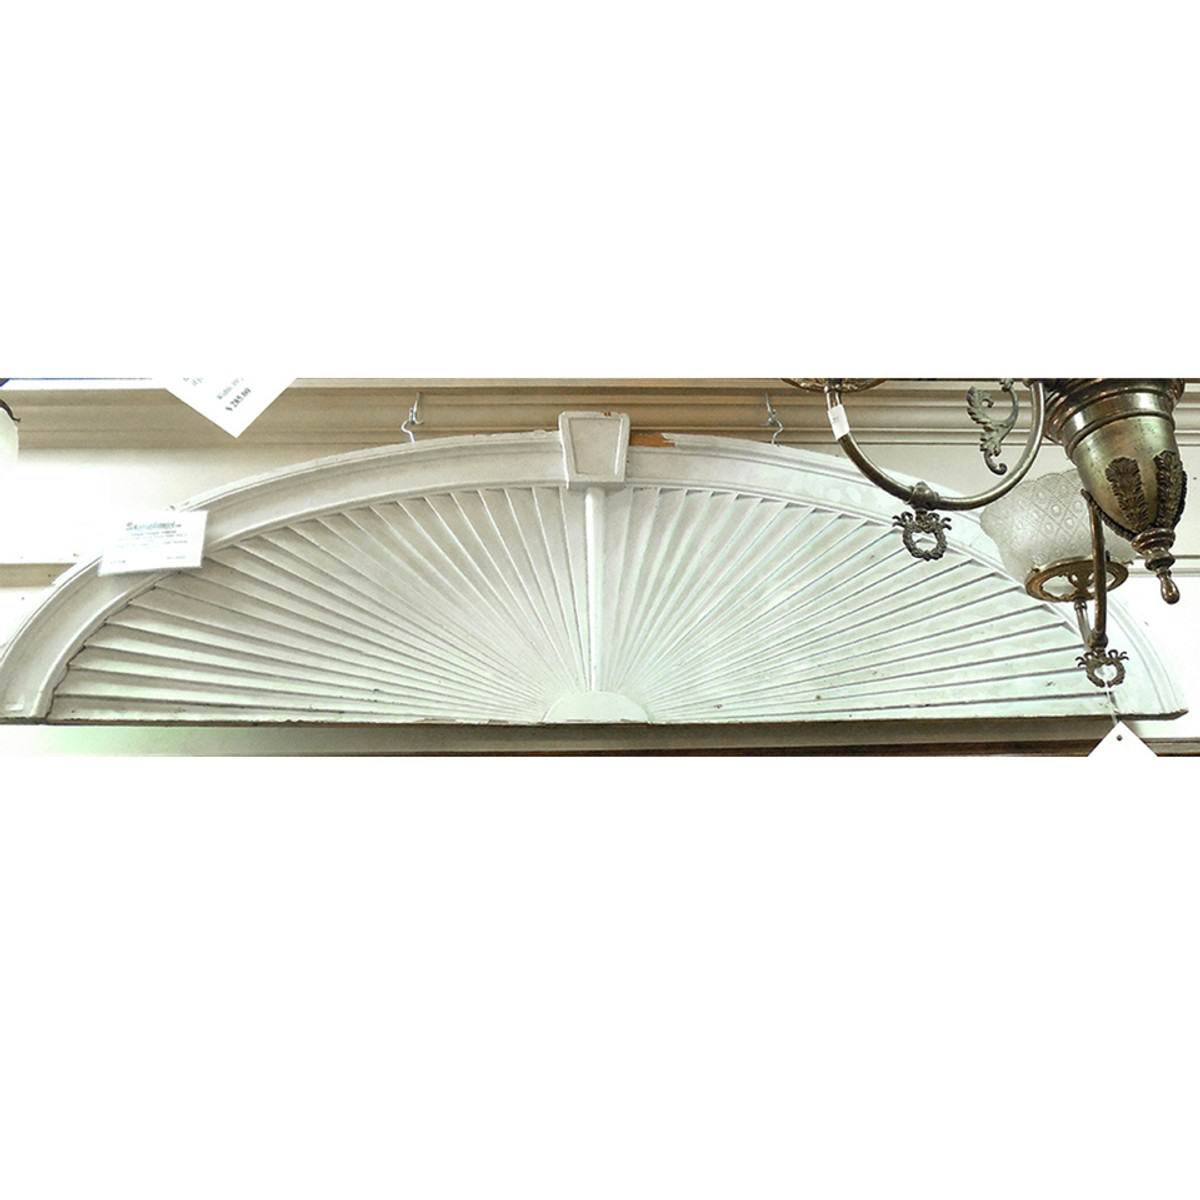 S11023 - Antique Pine Fanlight Transom